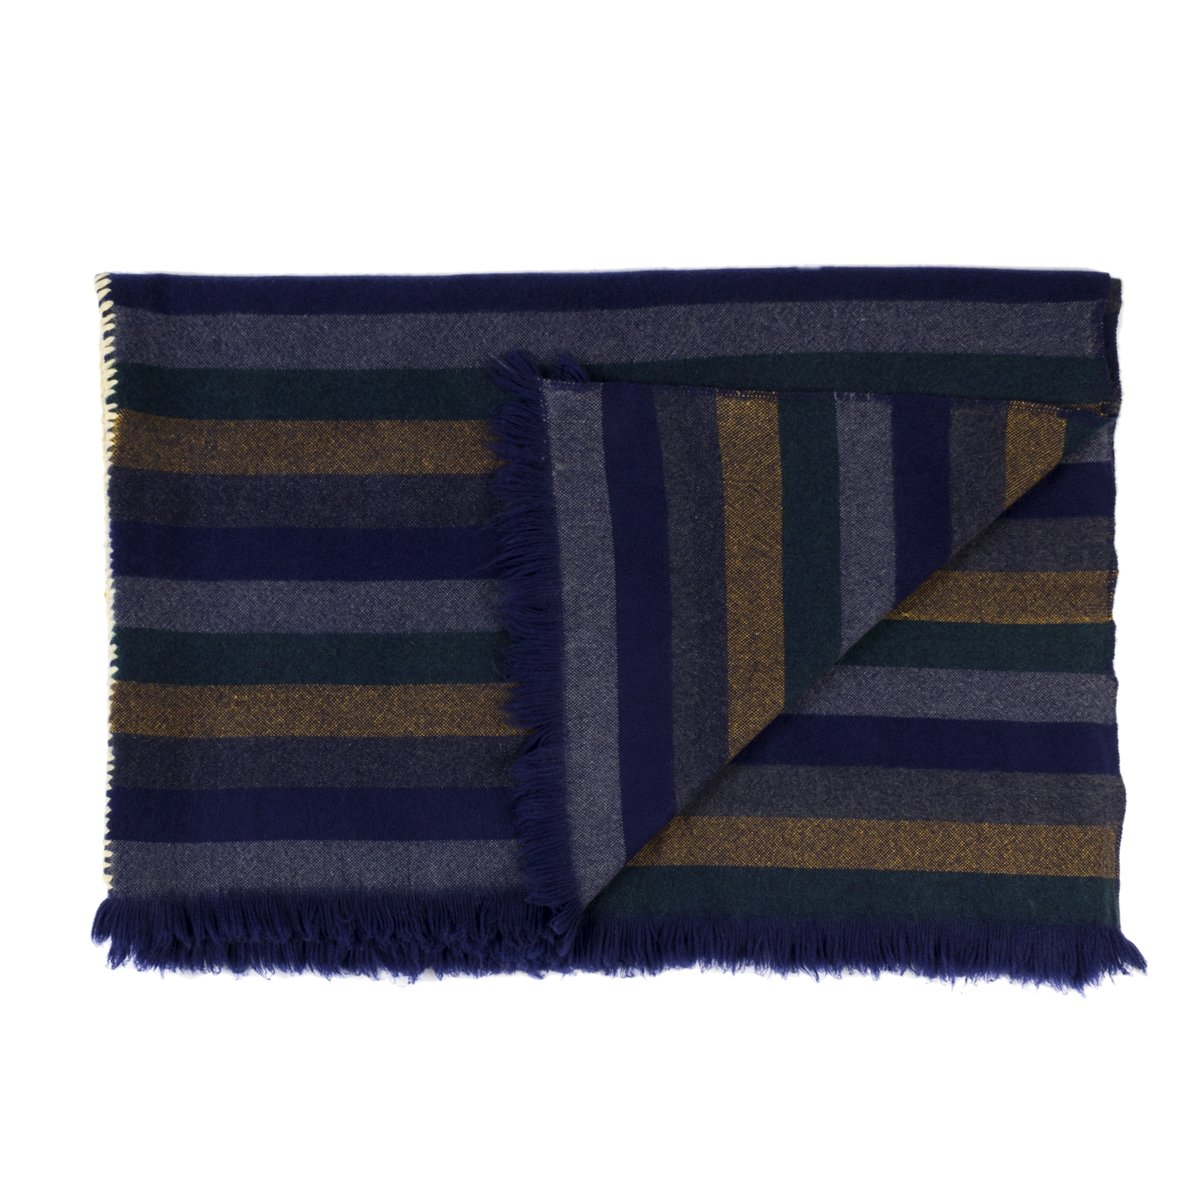 WCBLT_Woven_Throw_CRAZY_BLUE_MEDIUM_GREY_YELLOW_EMERALD_SILVER_with_BUTTER_WHIPSTITCH_1_copy_1200x1200.jpg